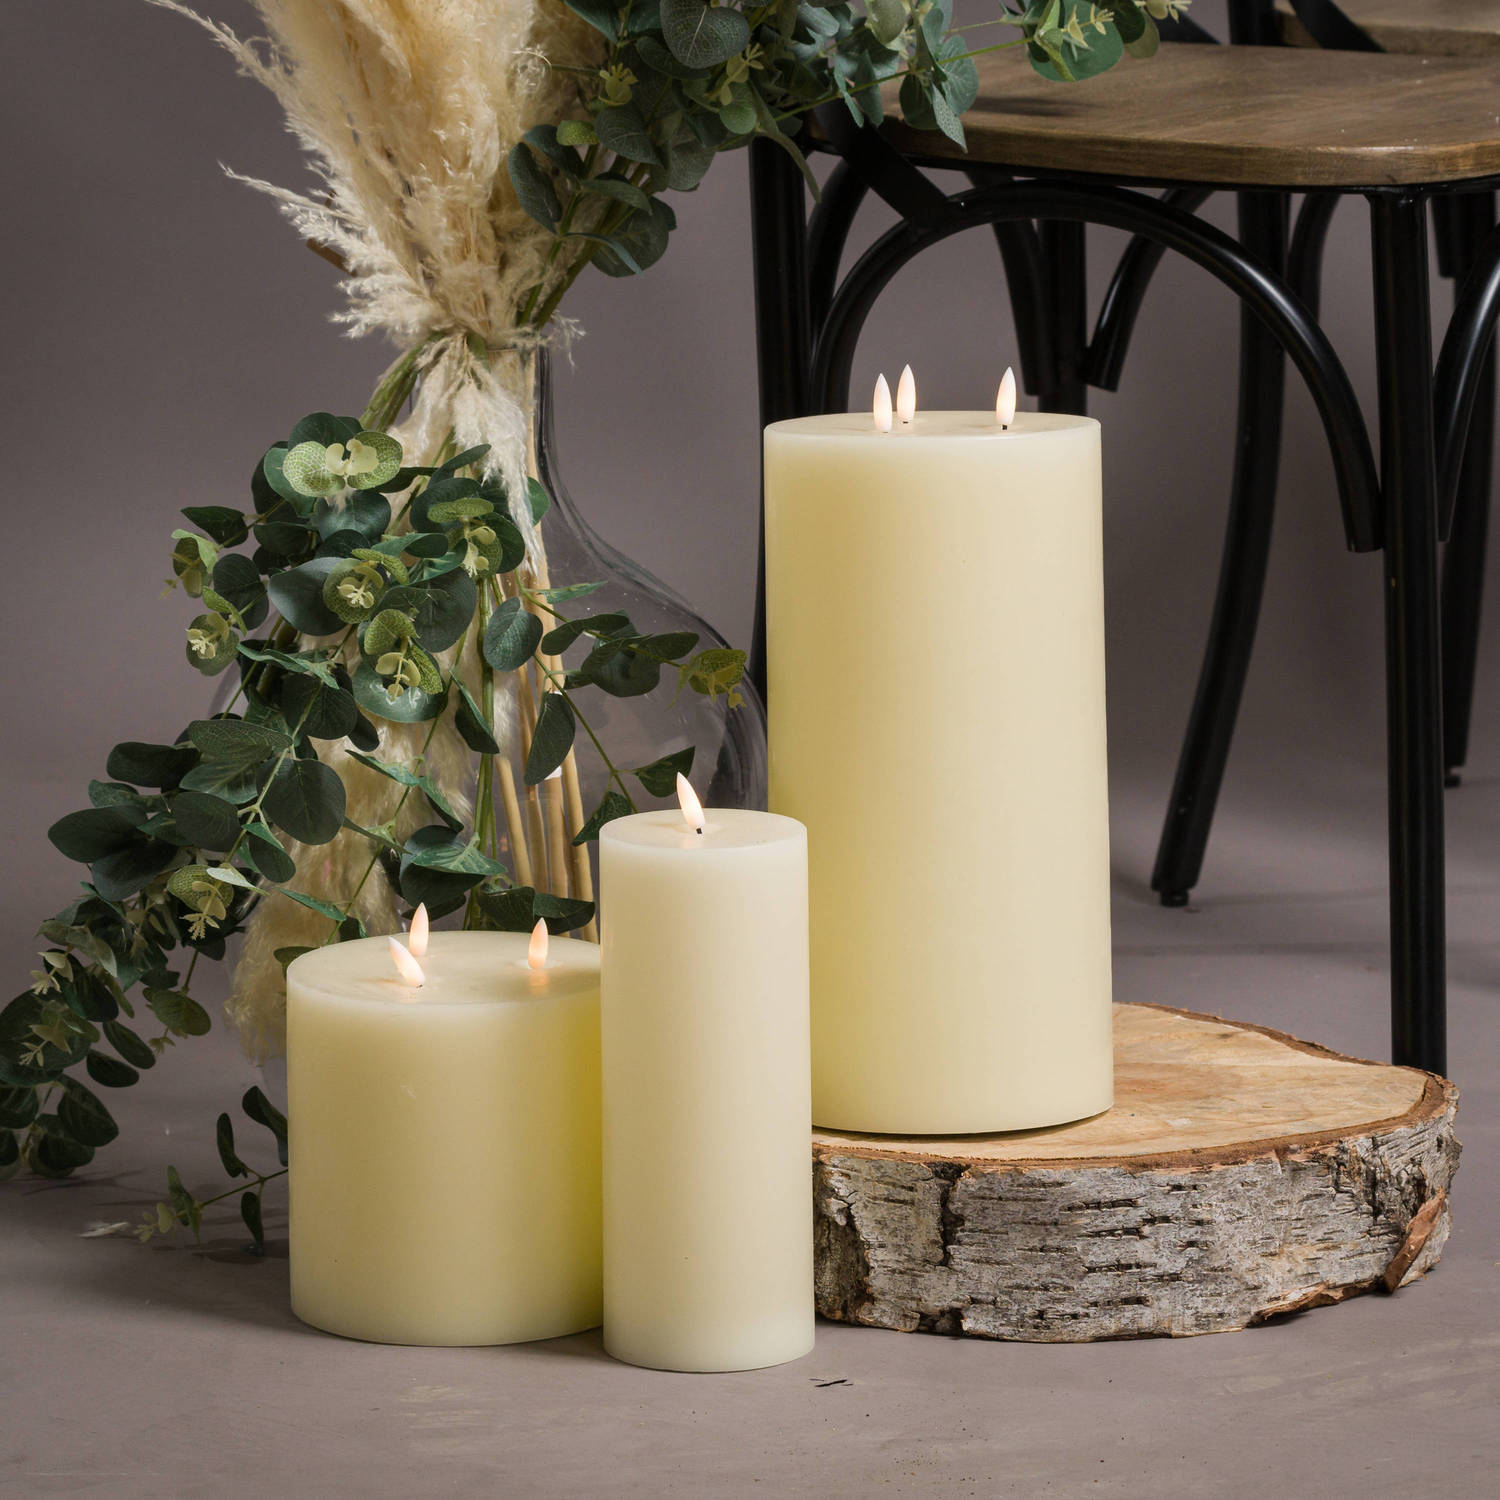 Luxe Collection Natural Glow 6 x 6 LED Ivory Candle - Image 5